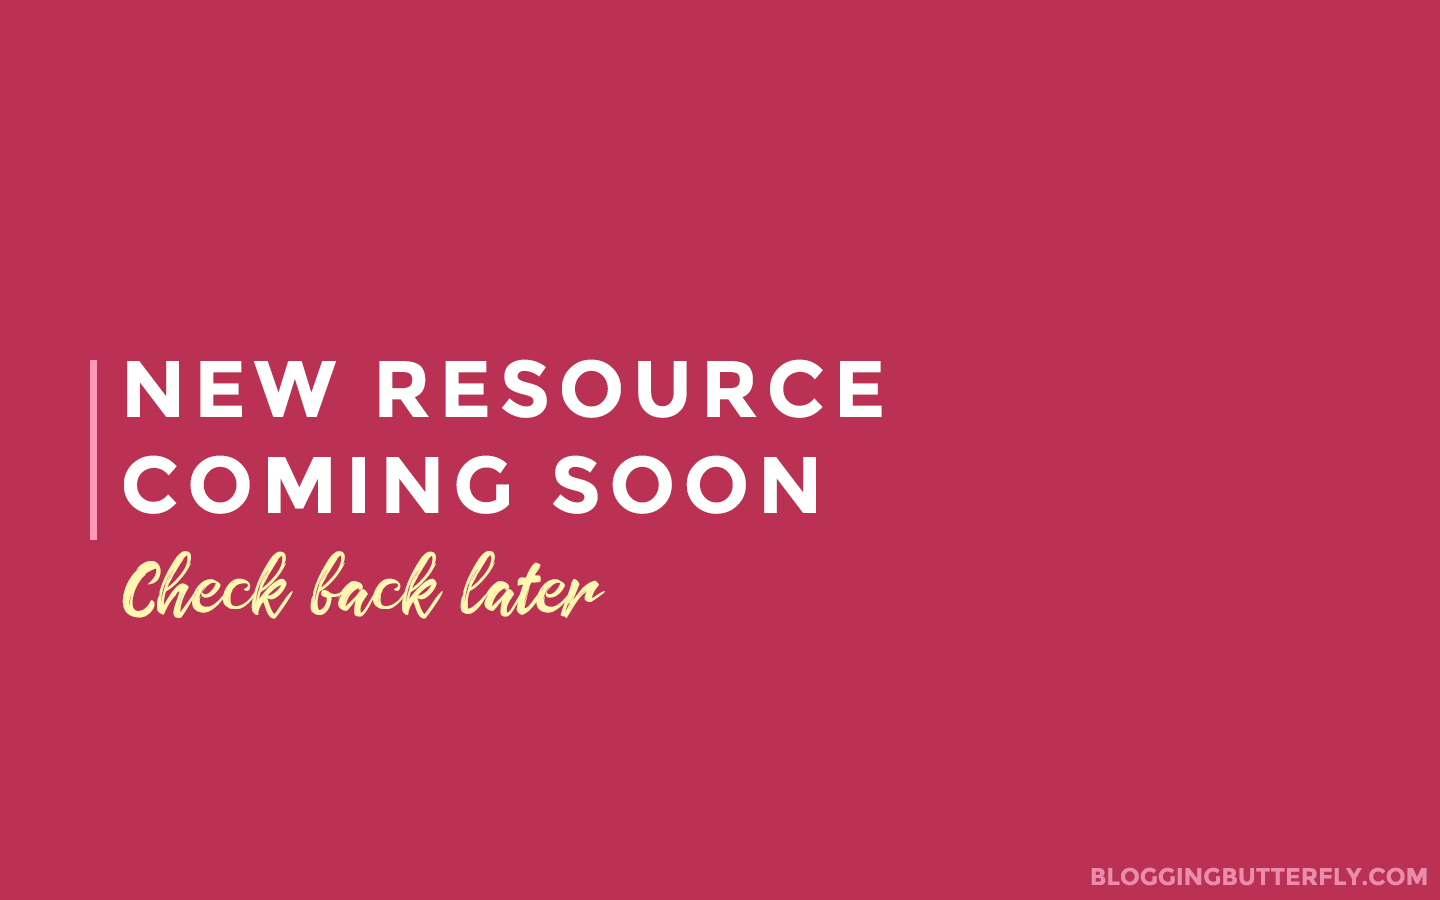 New blogging resource coming soon